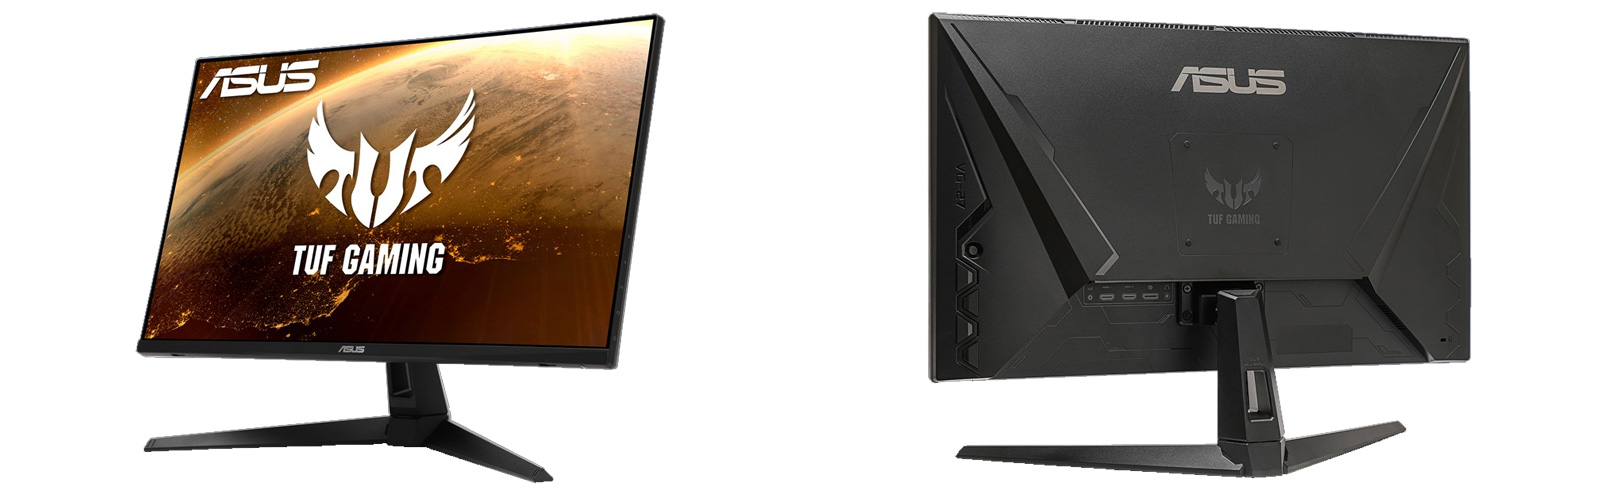 "The Asus VG27AQ1А offers a 170Hz 27"" QHD IPS display panel made for gaming"